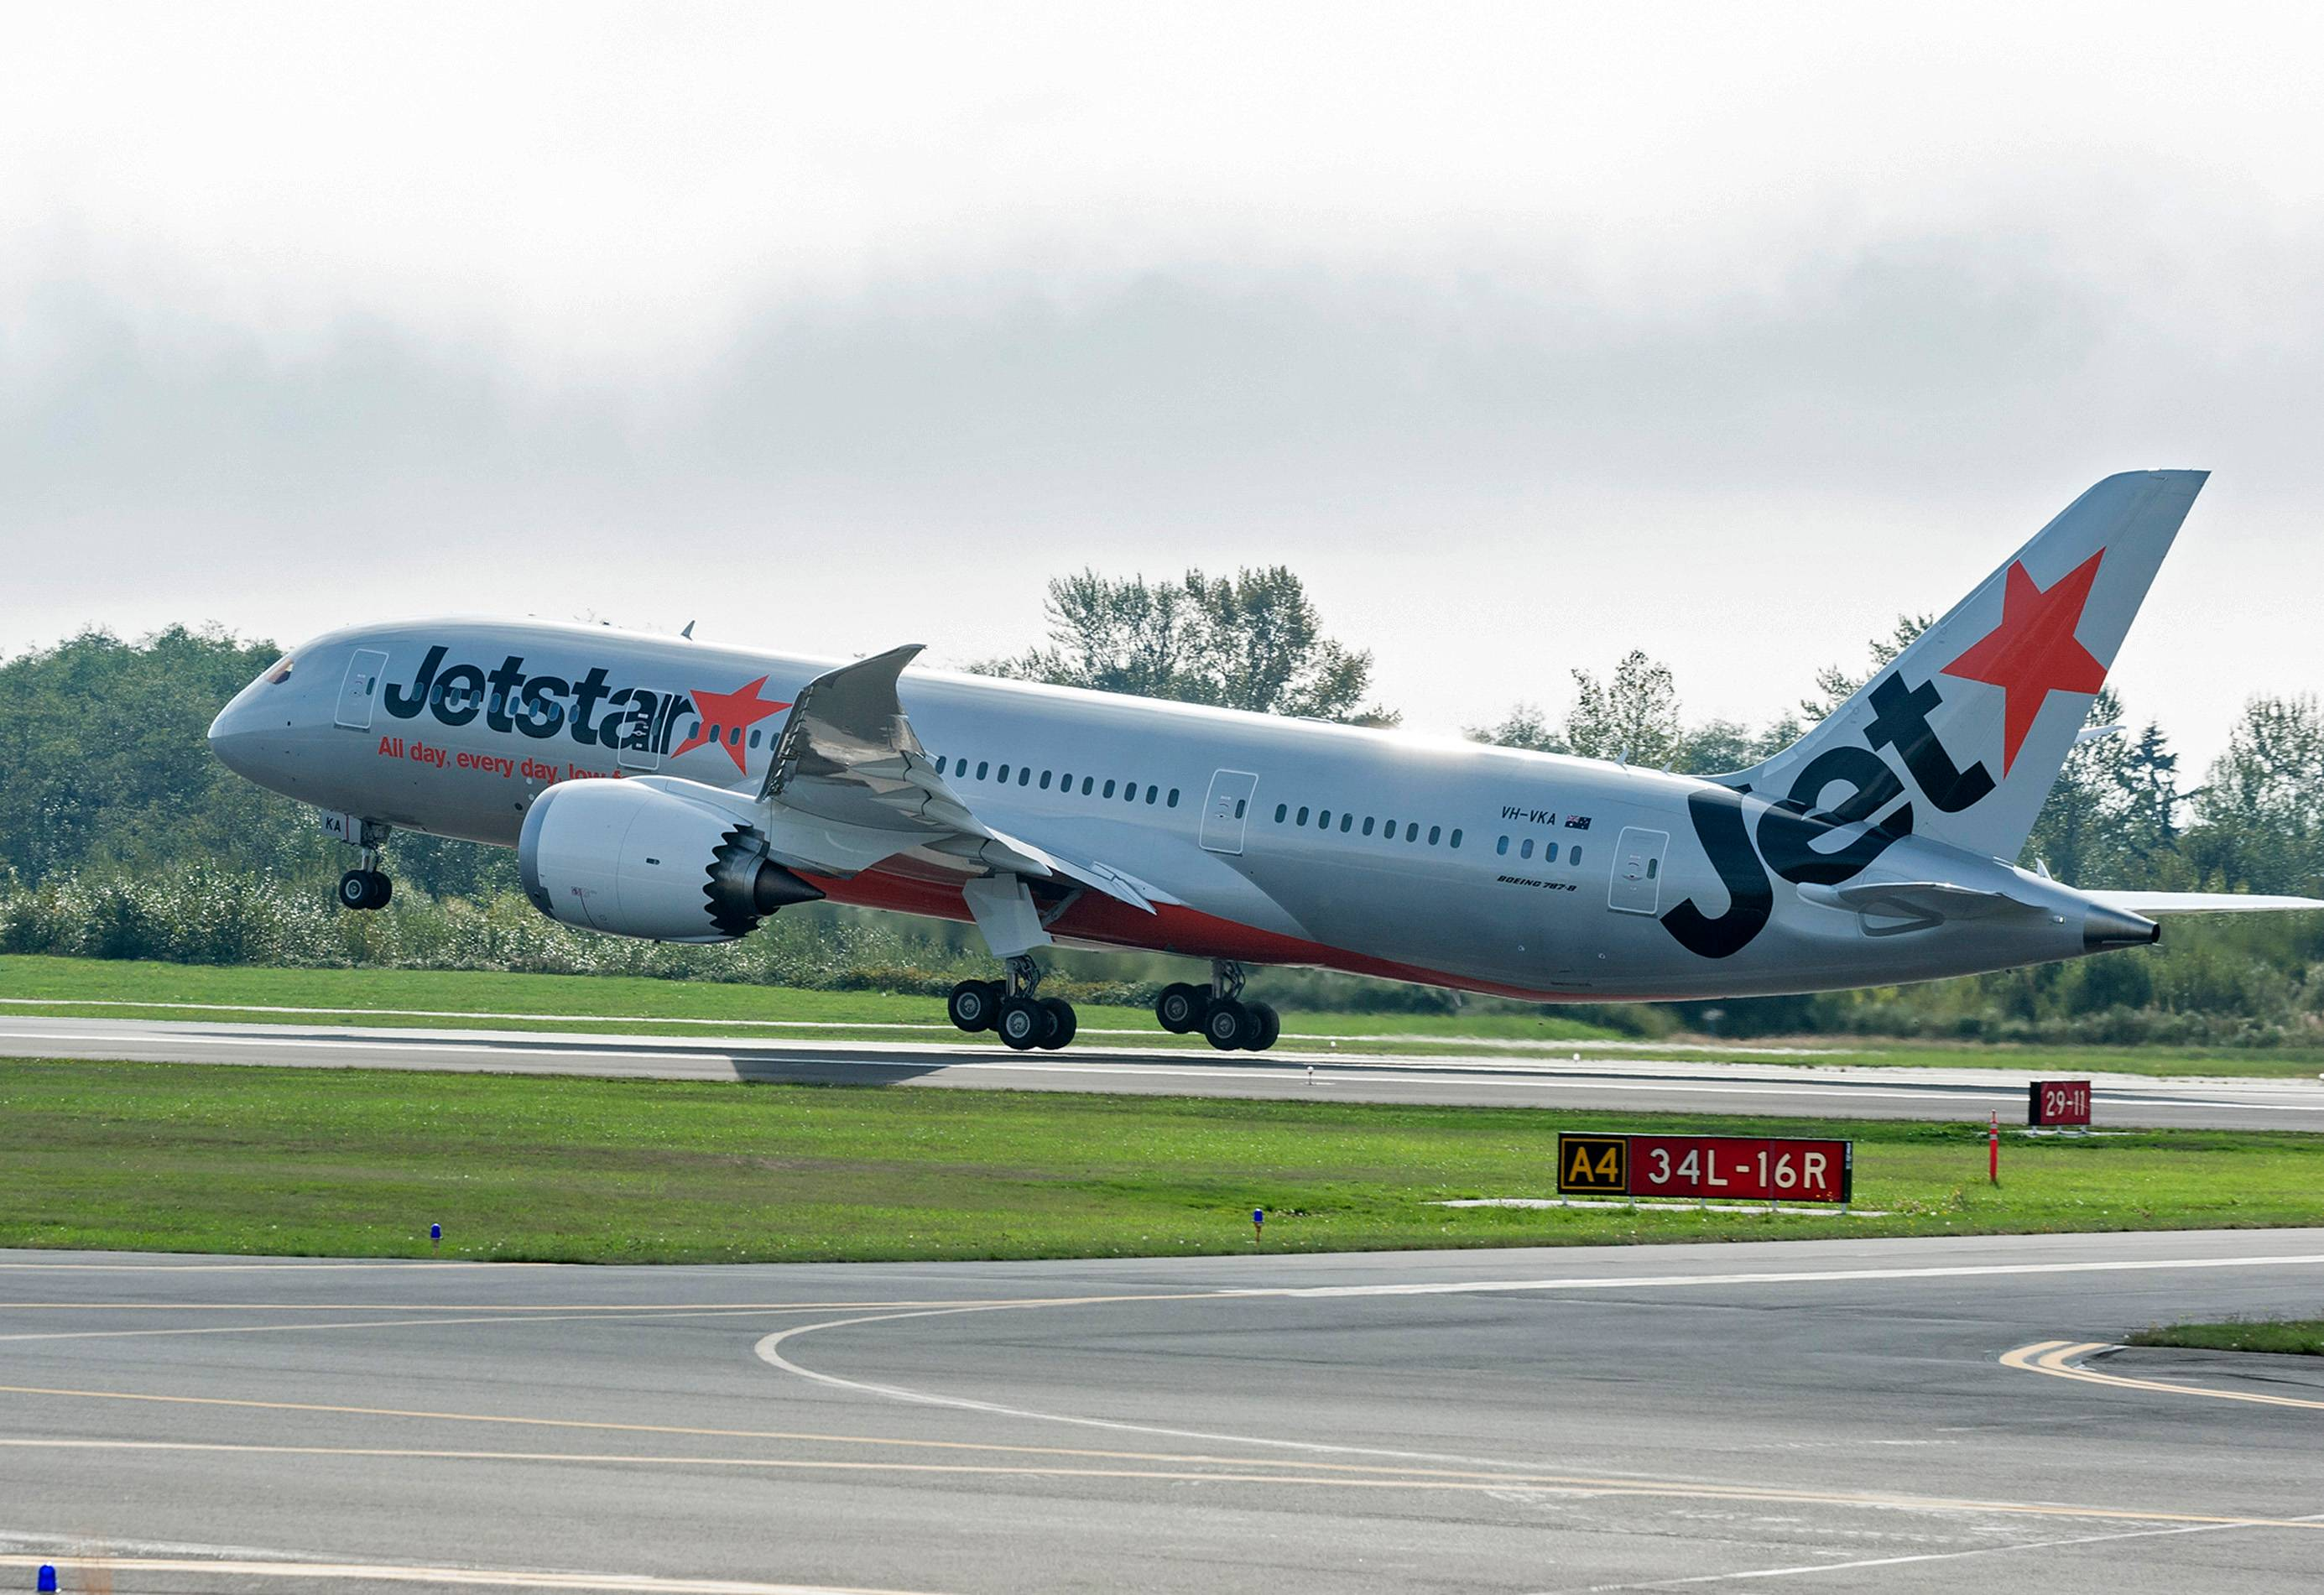 Jetstar Dreamliner taking flight